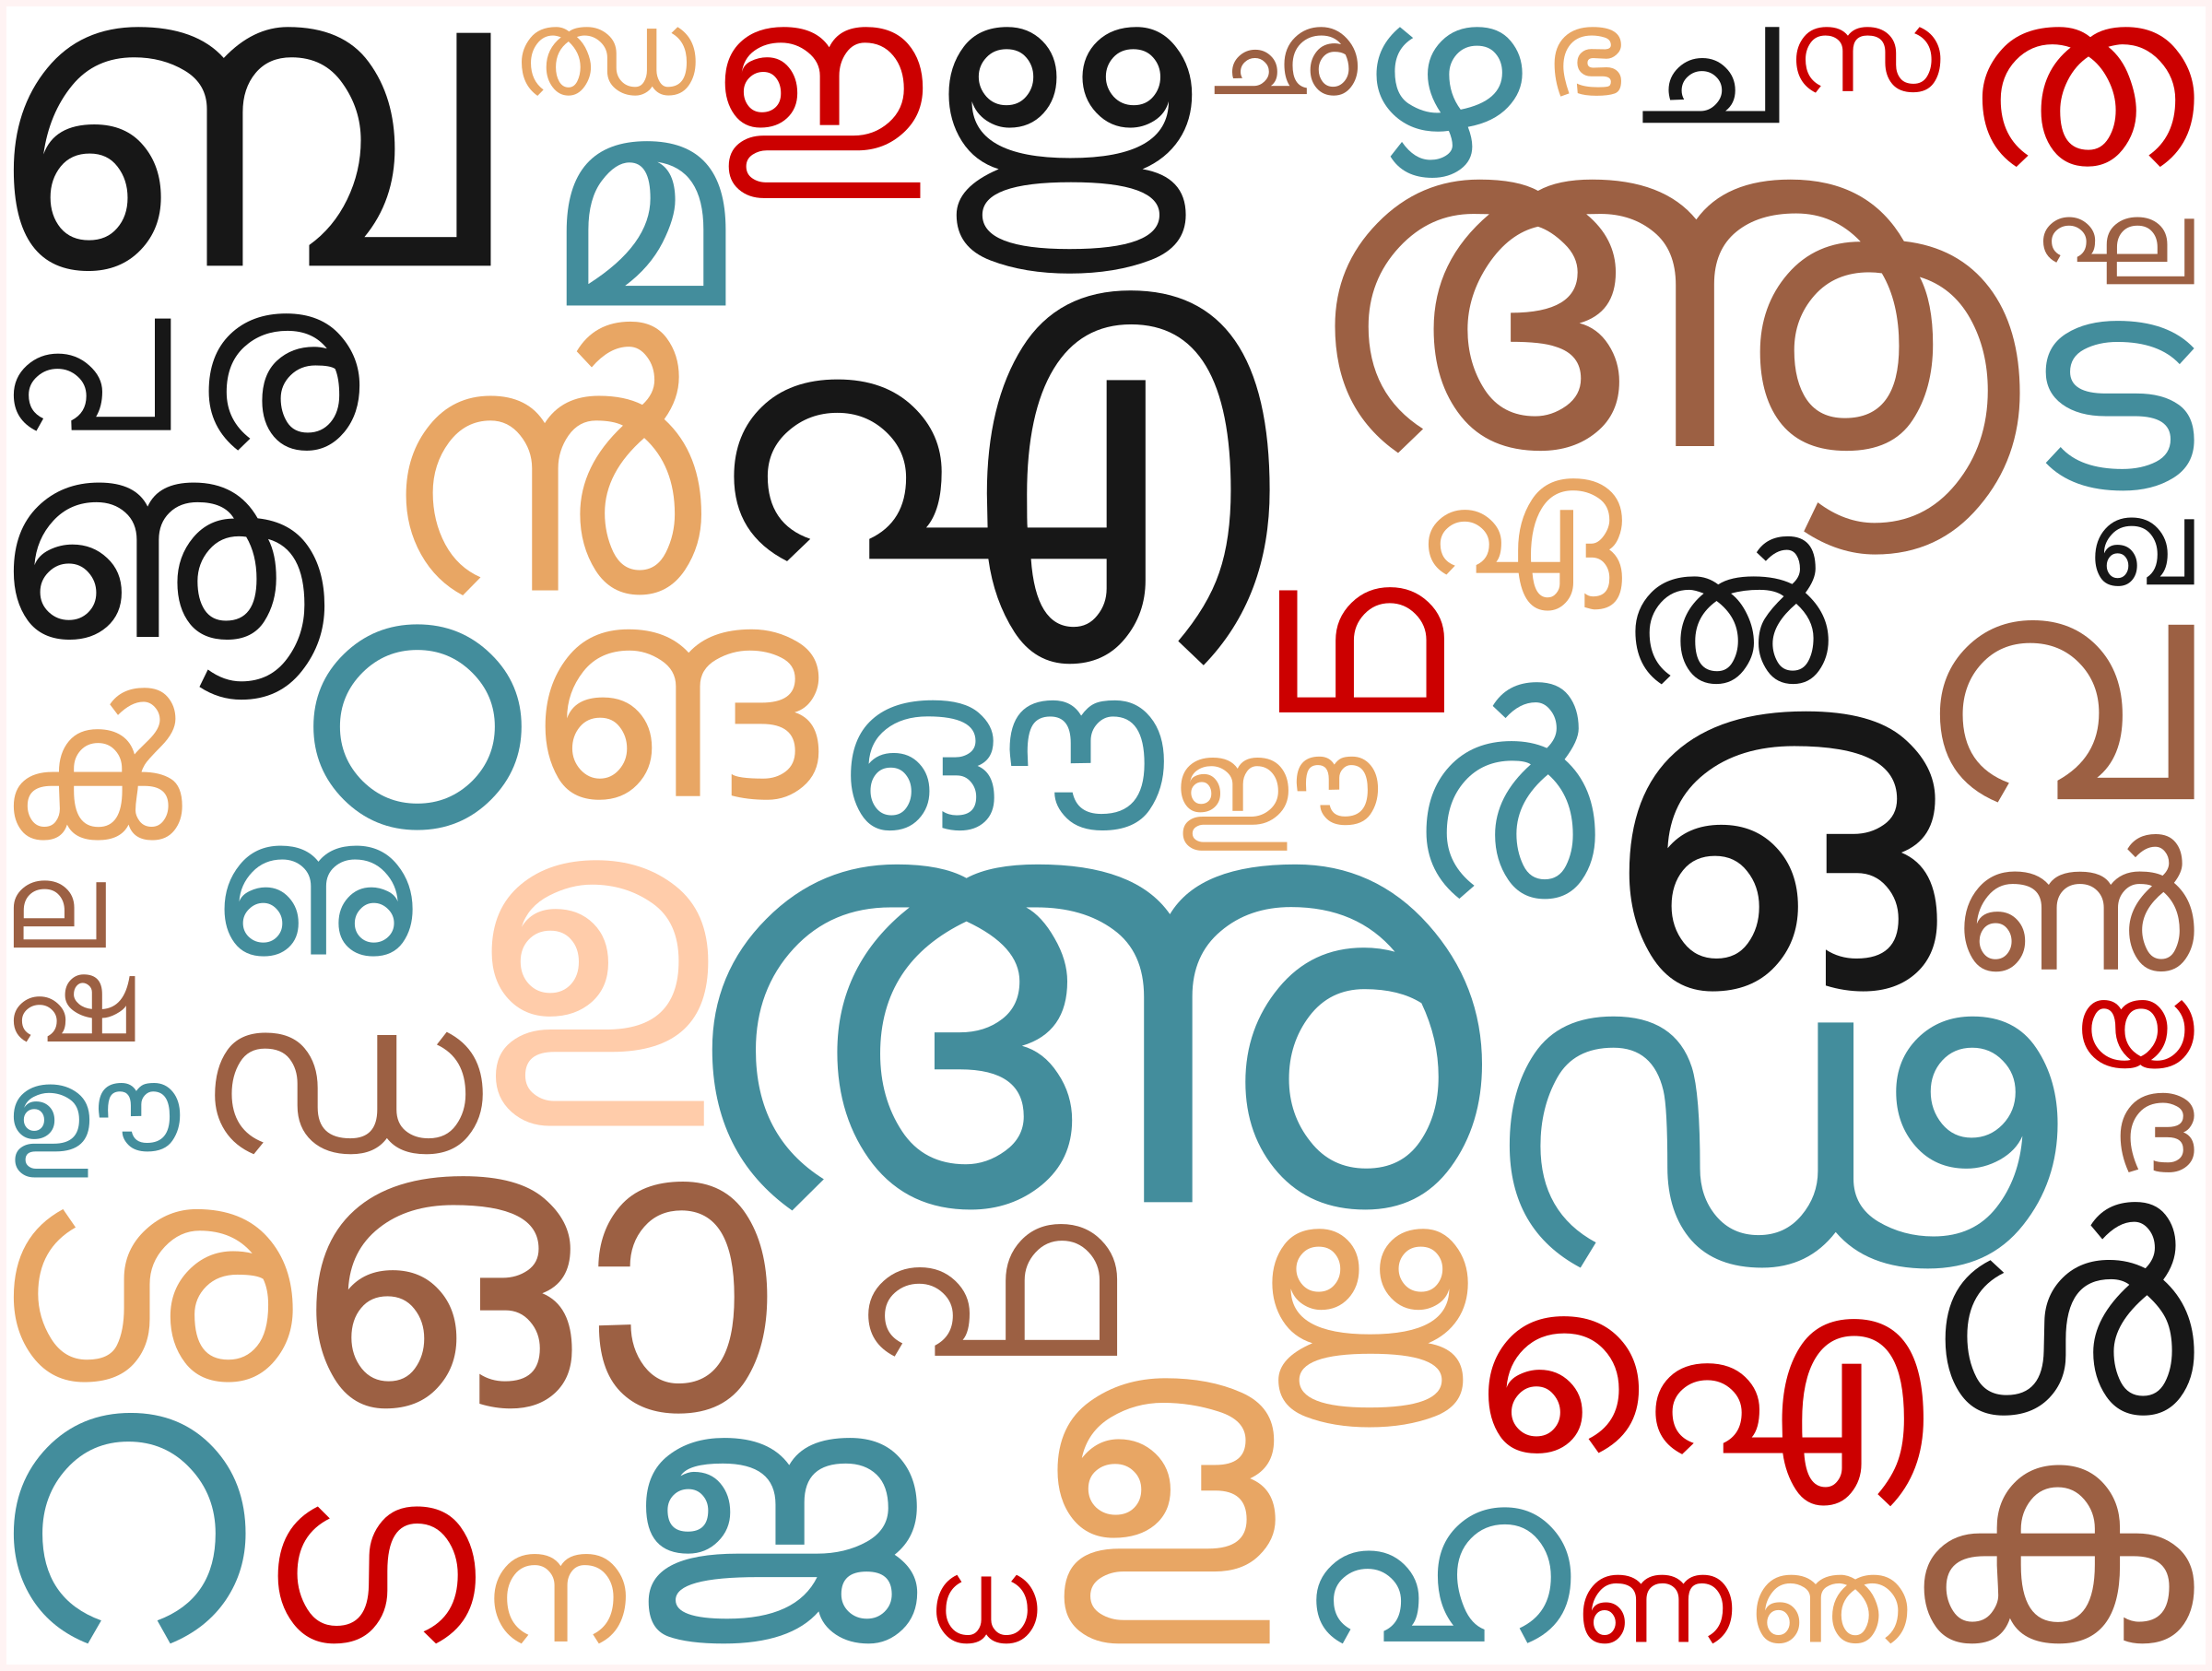 Malayalam Script (Akasharamala) as Word Cloud  by navaneethks